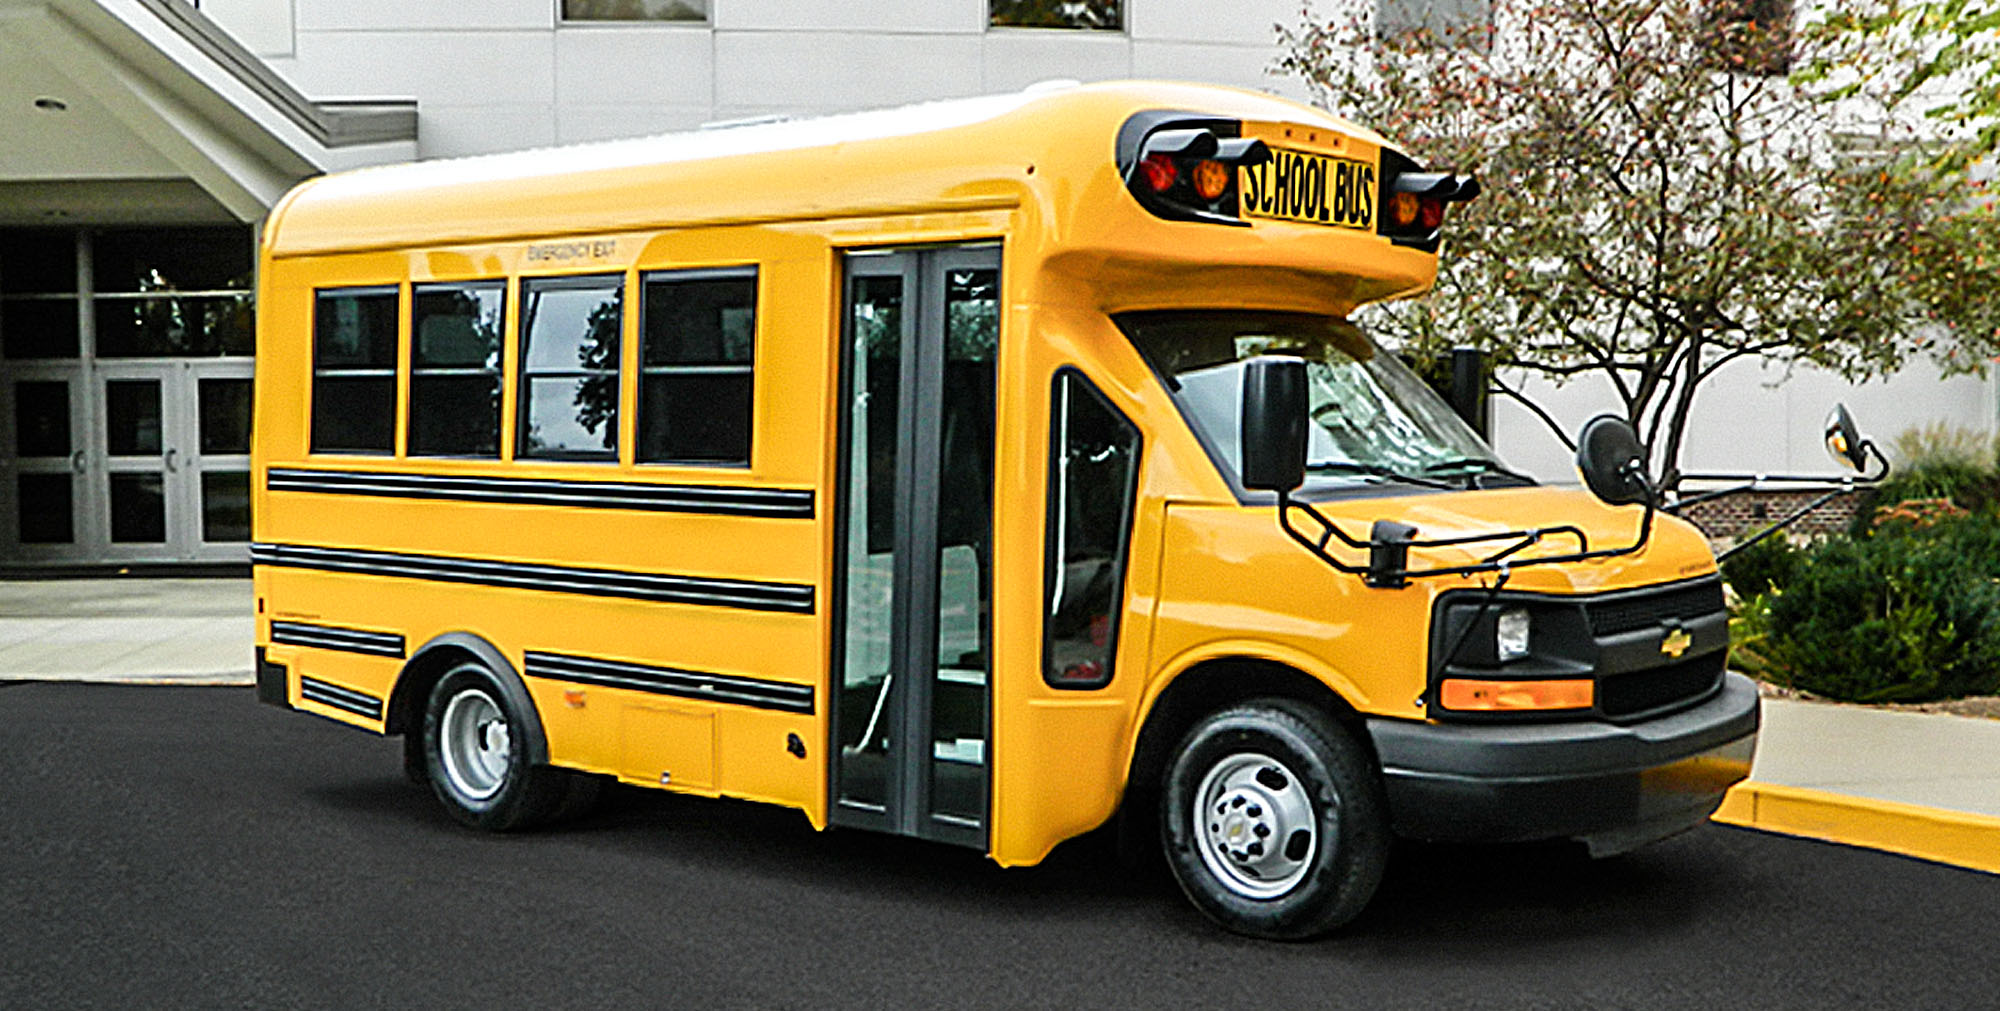 slideshow-schoolbus-type-a_questdrw3.jpg